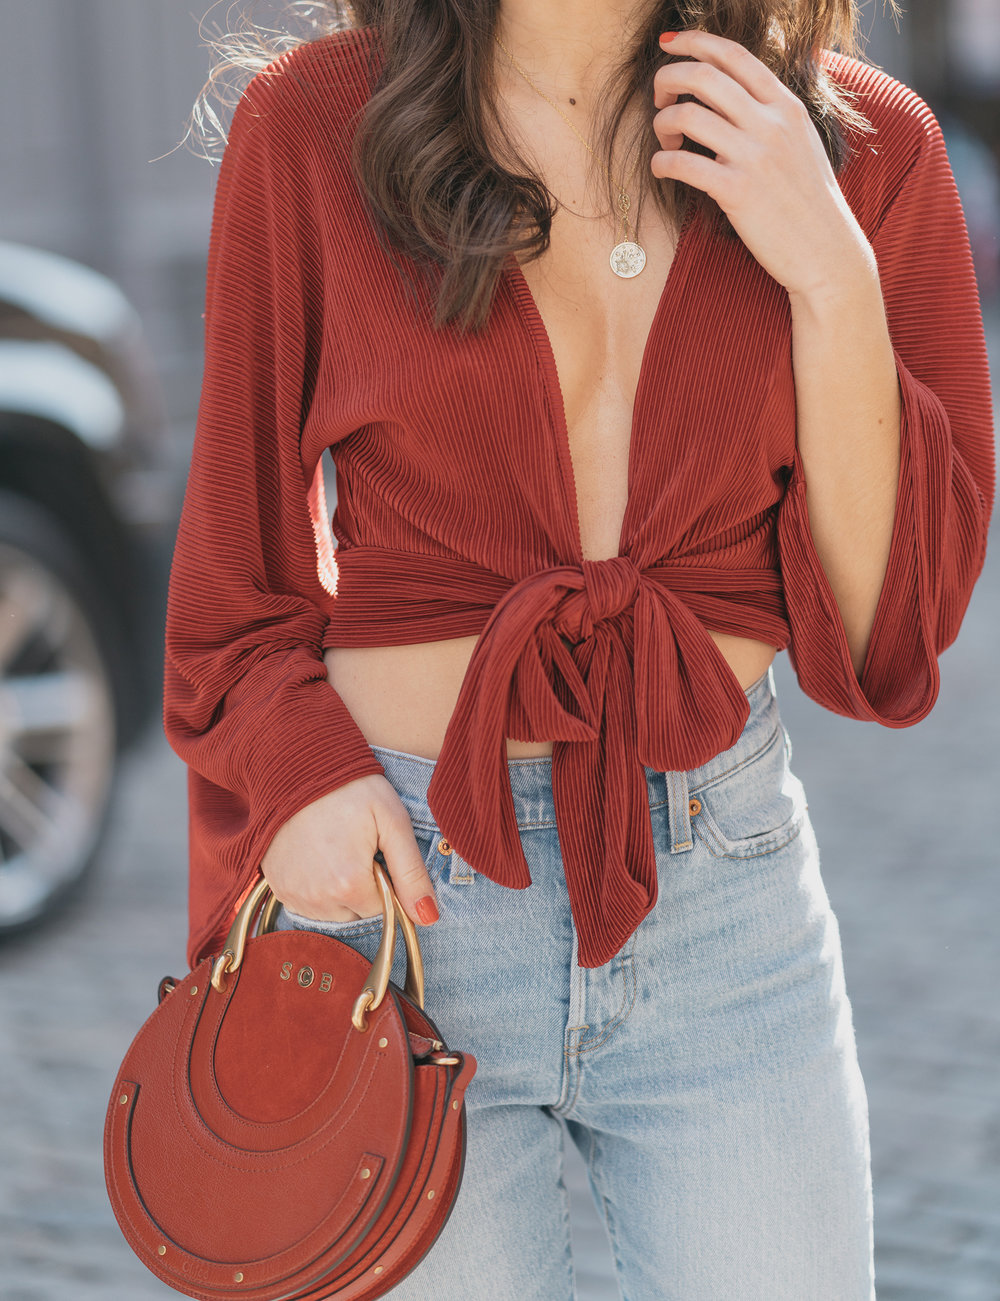 Red-Kimono-Tie-Front-Top-Ruby-Chloe-Pixie-Leather-Crossbody-Bag-8.jpg